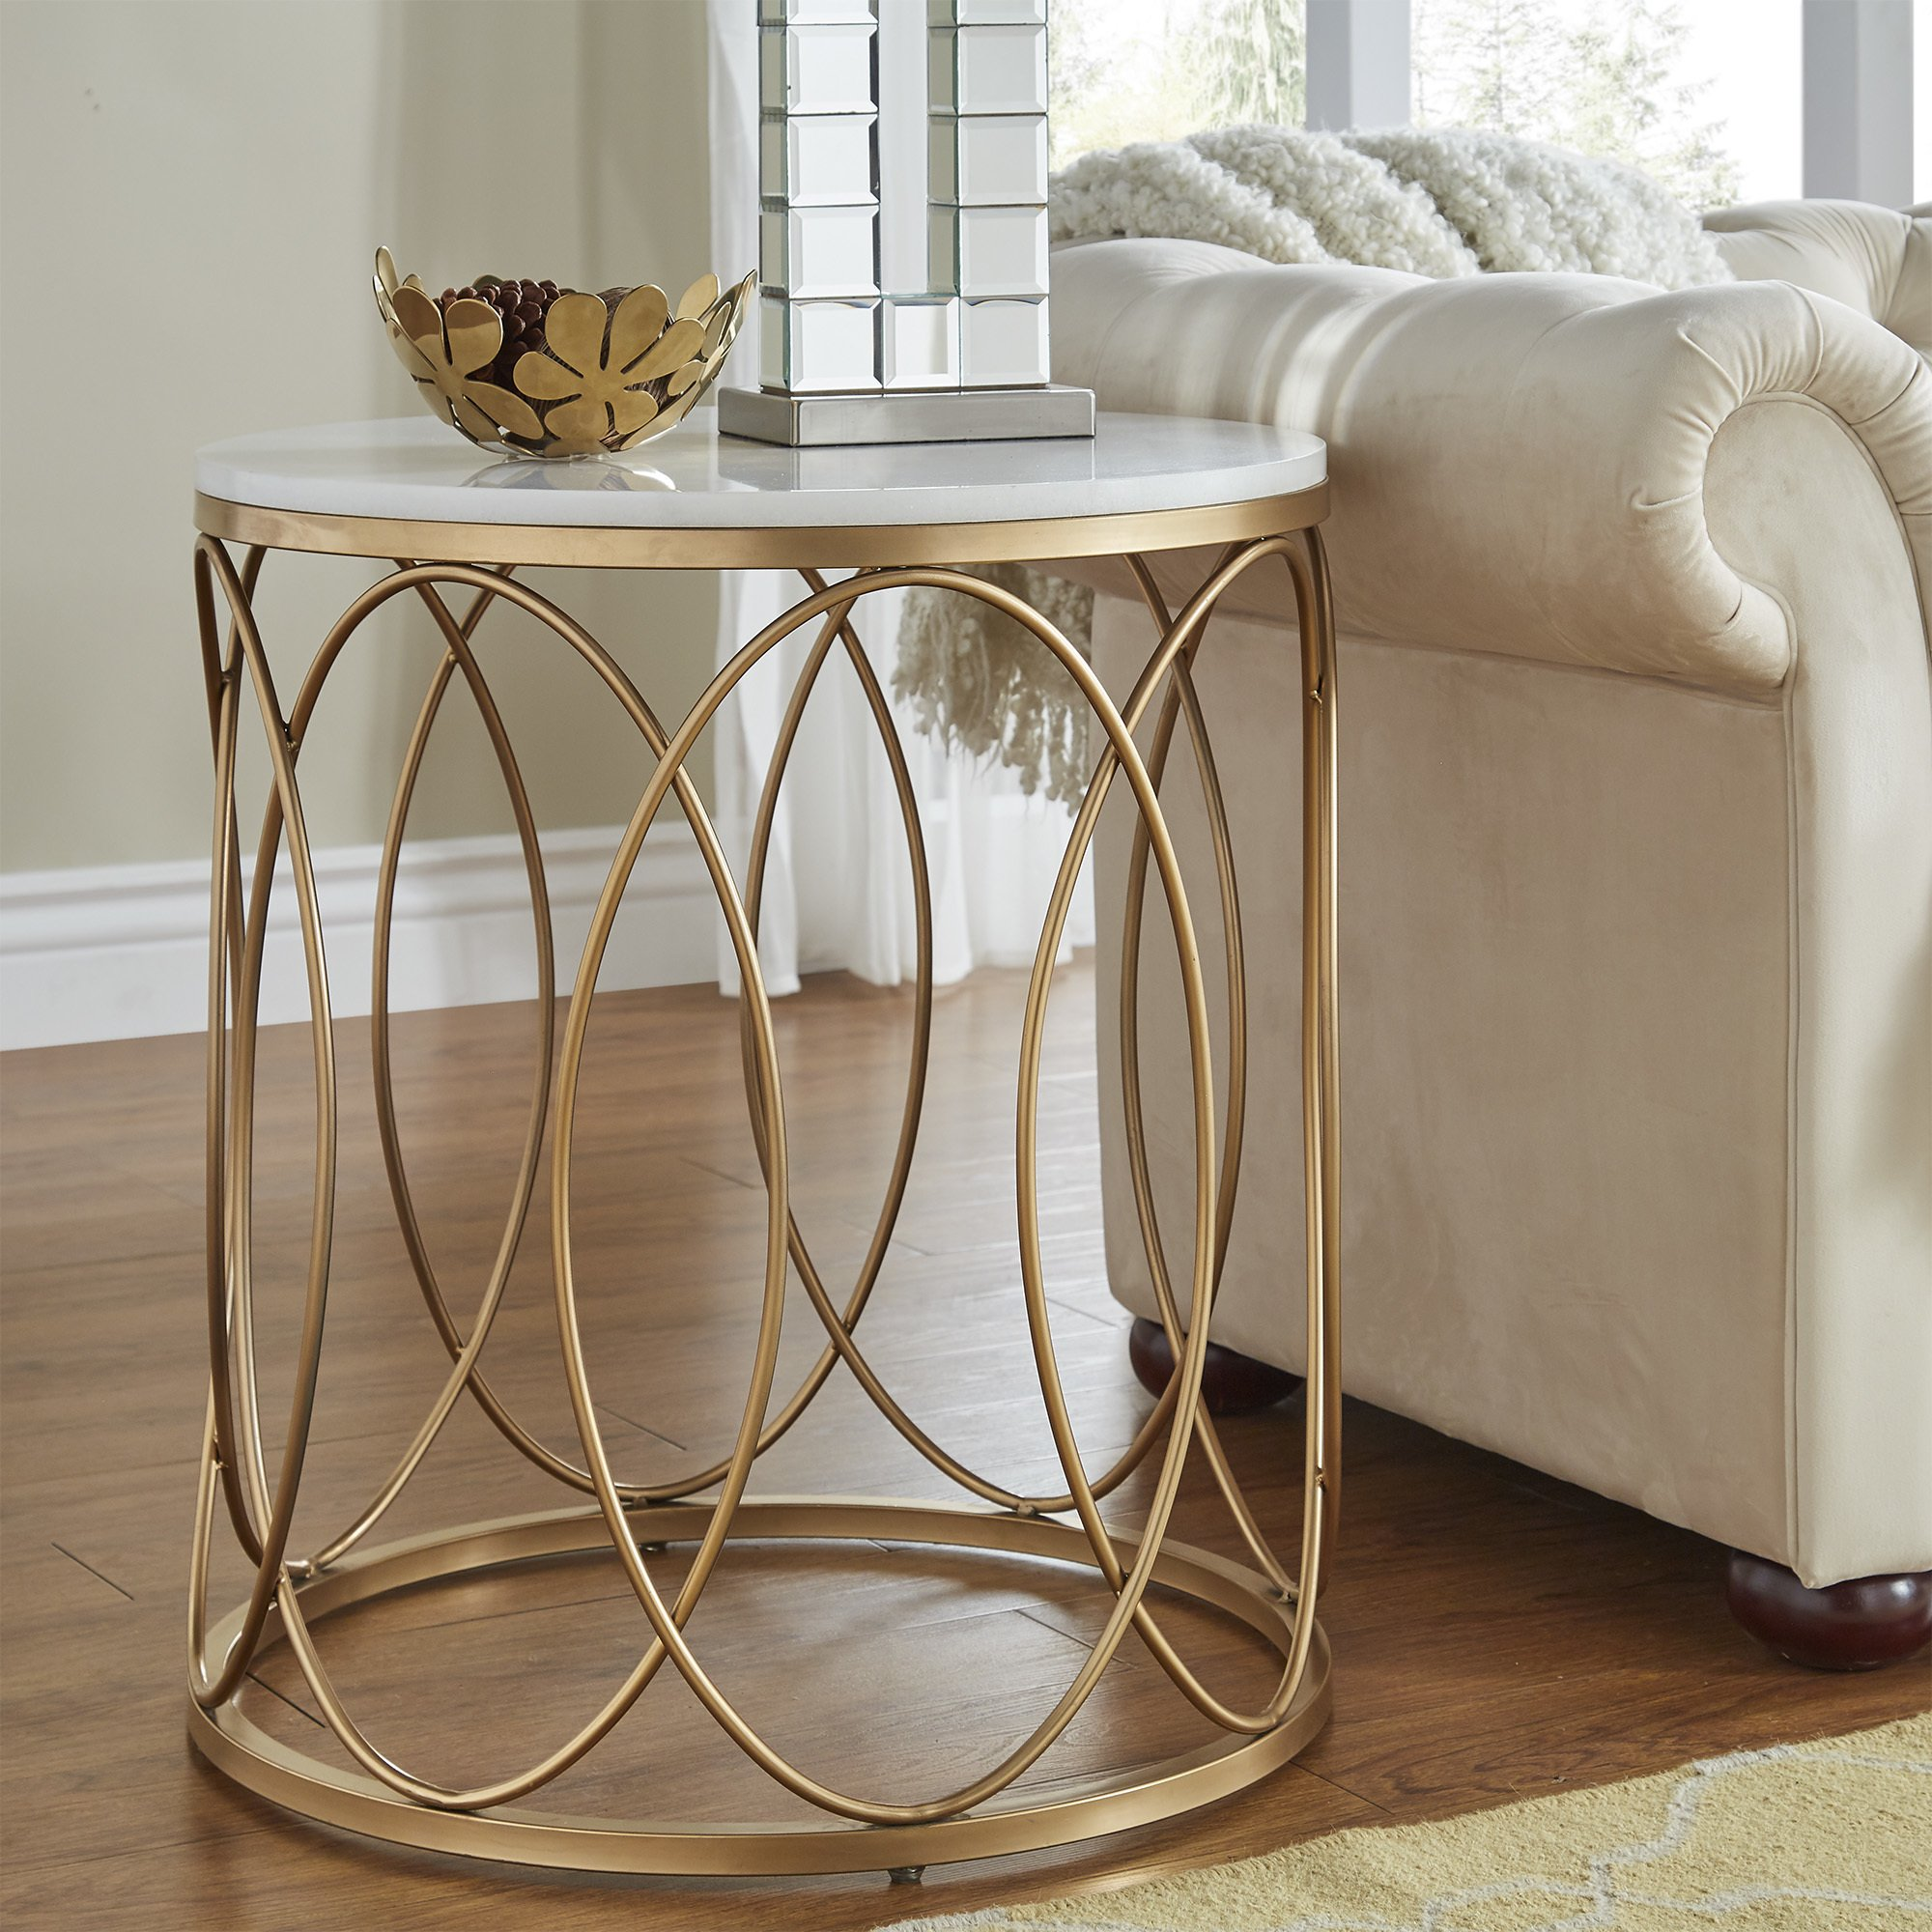 lynn round gold end table with marble top inspire bold accent free shipping today threshold coffee wall lights yellow lamp target wood side deck tables mirage mirrored cabinet